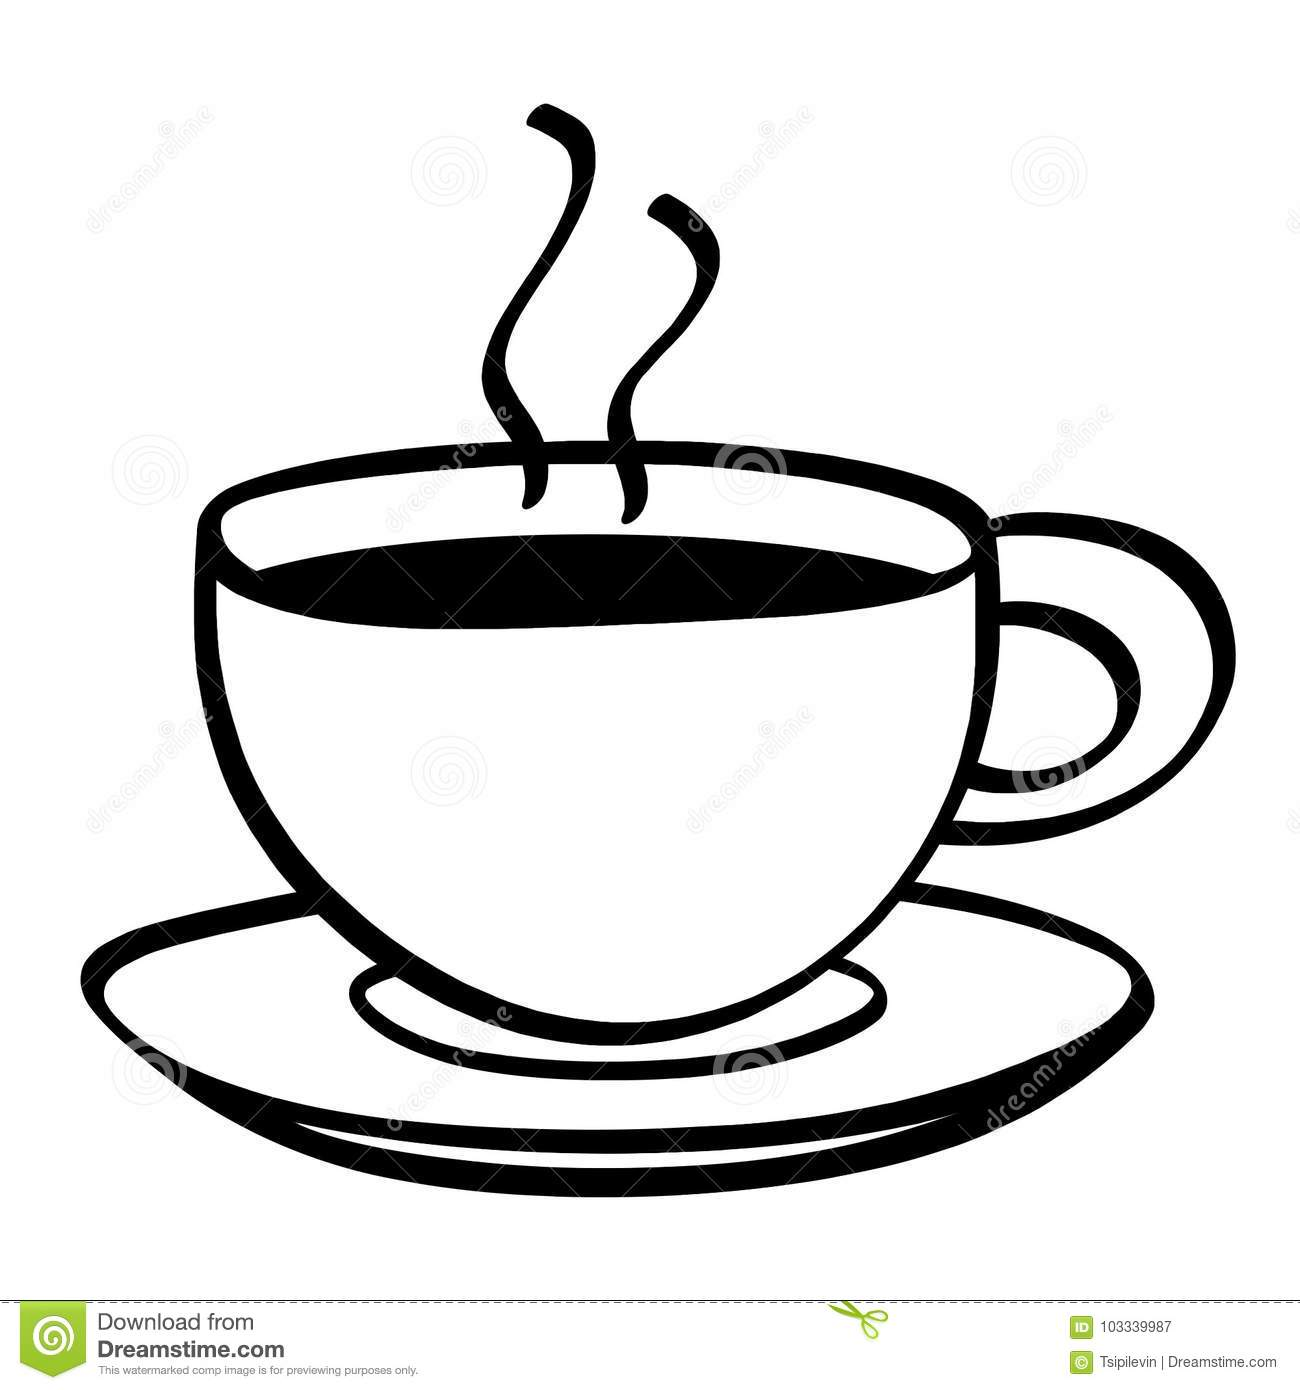 Cup Of Coffee Black And White Illustration Stock